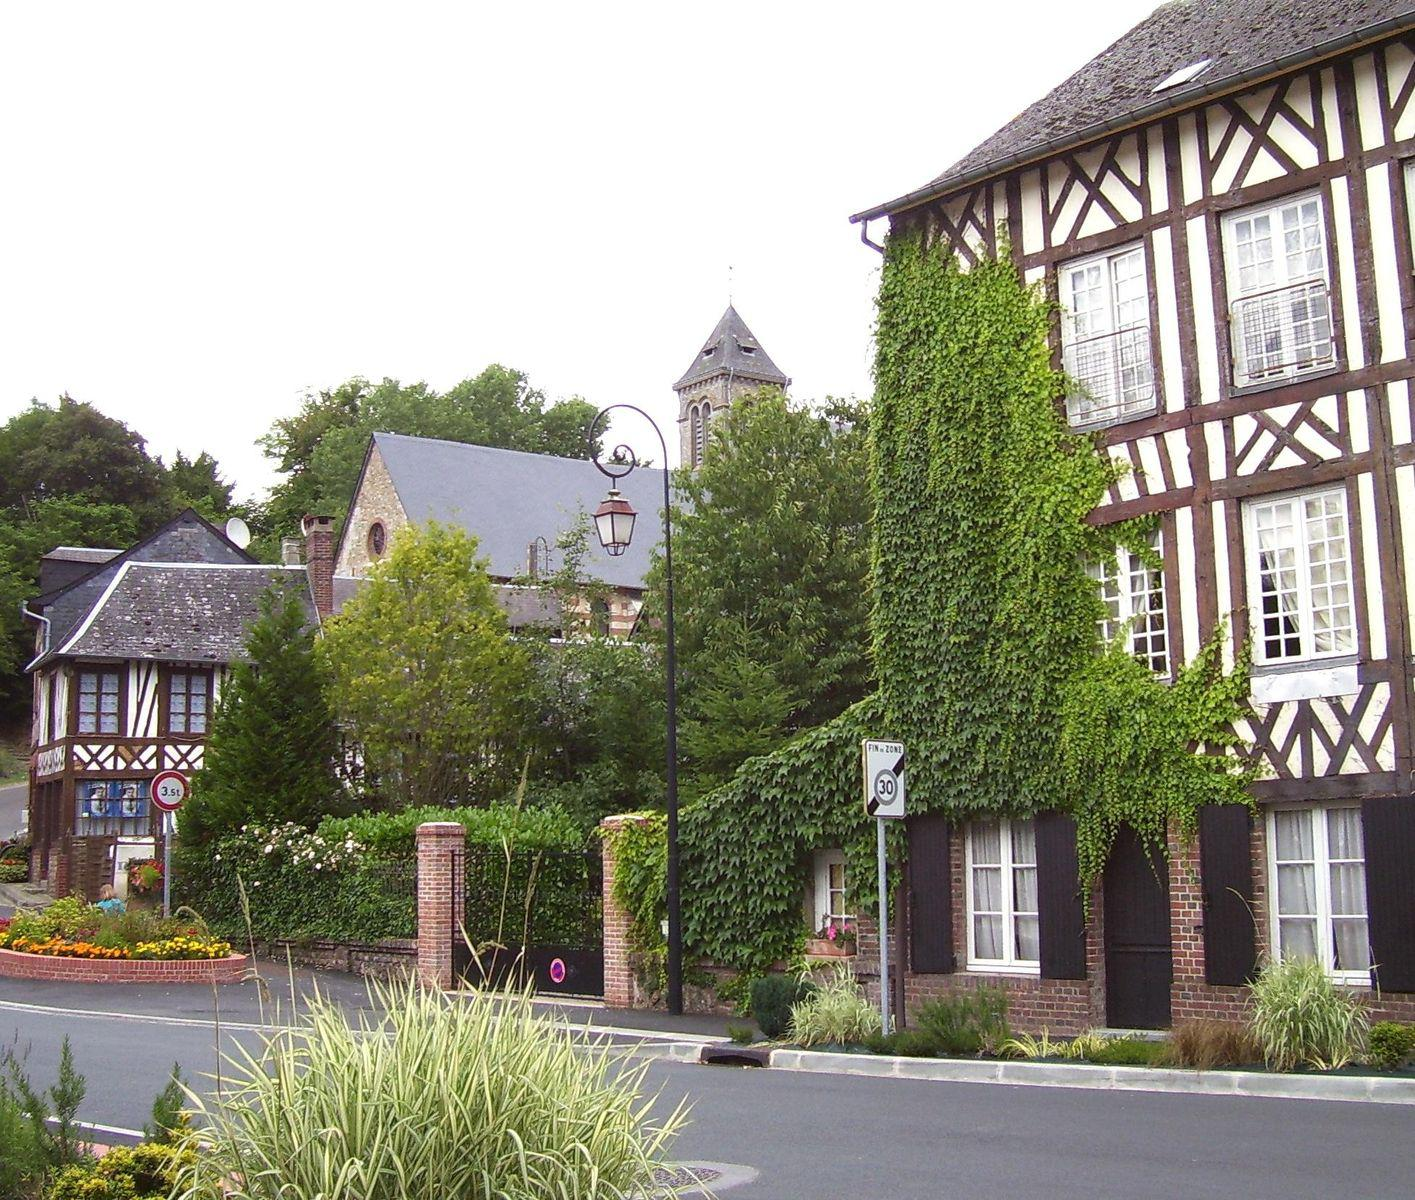 Image : Office de Tourisme* de Saint-Georges-du-vièvre